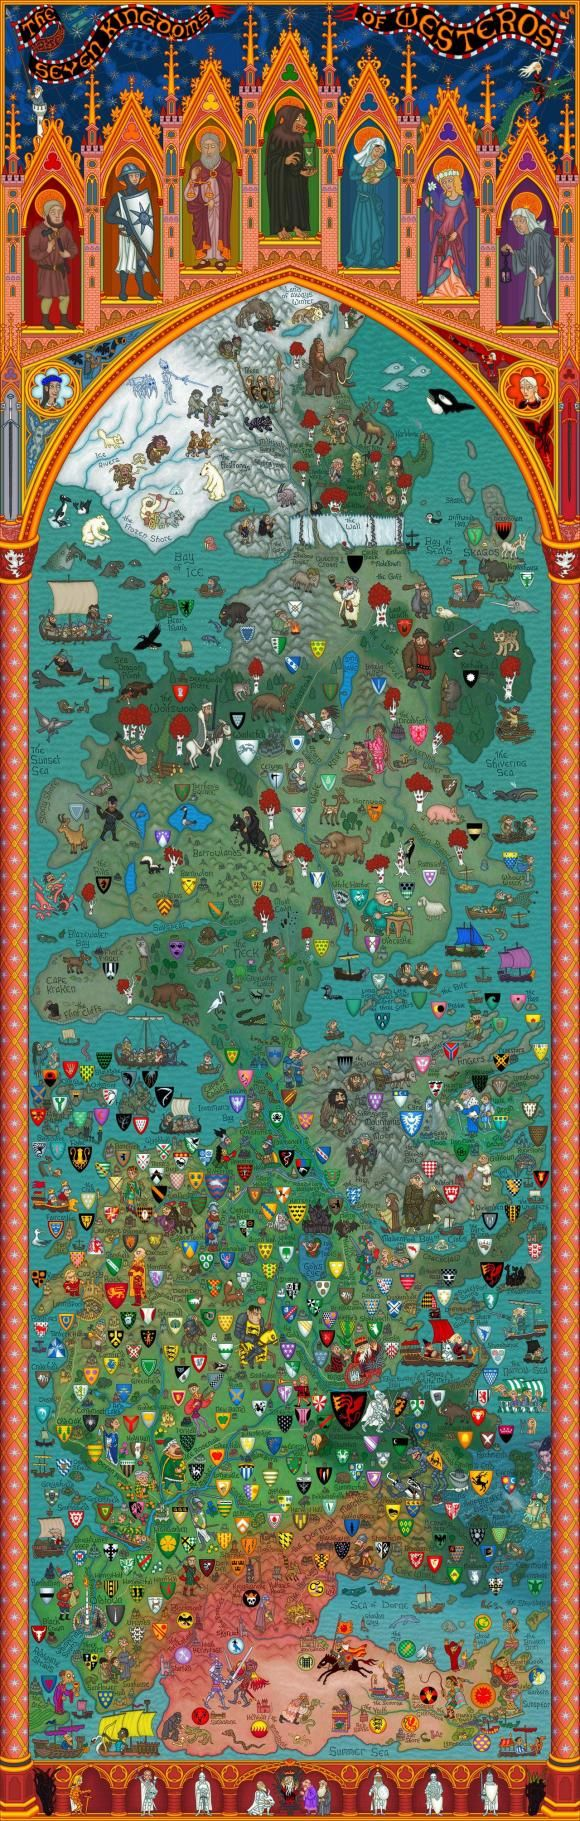 Check out this insanely detailed map of George R.R. Martin's Westeros | Blastr - This is insanely amazing! And because I'm crazy, I really want to stitch it...